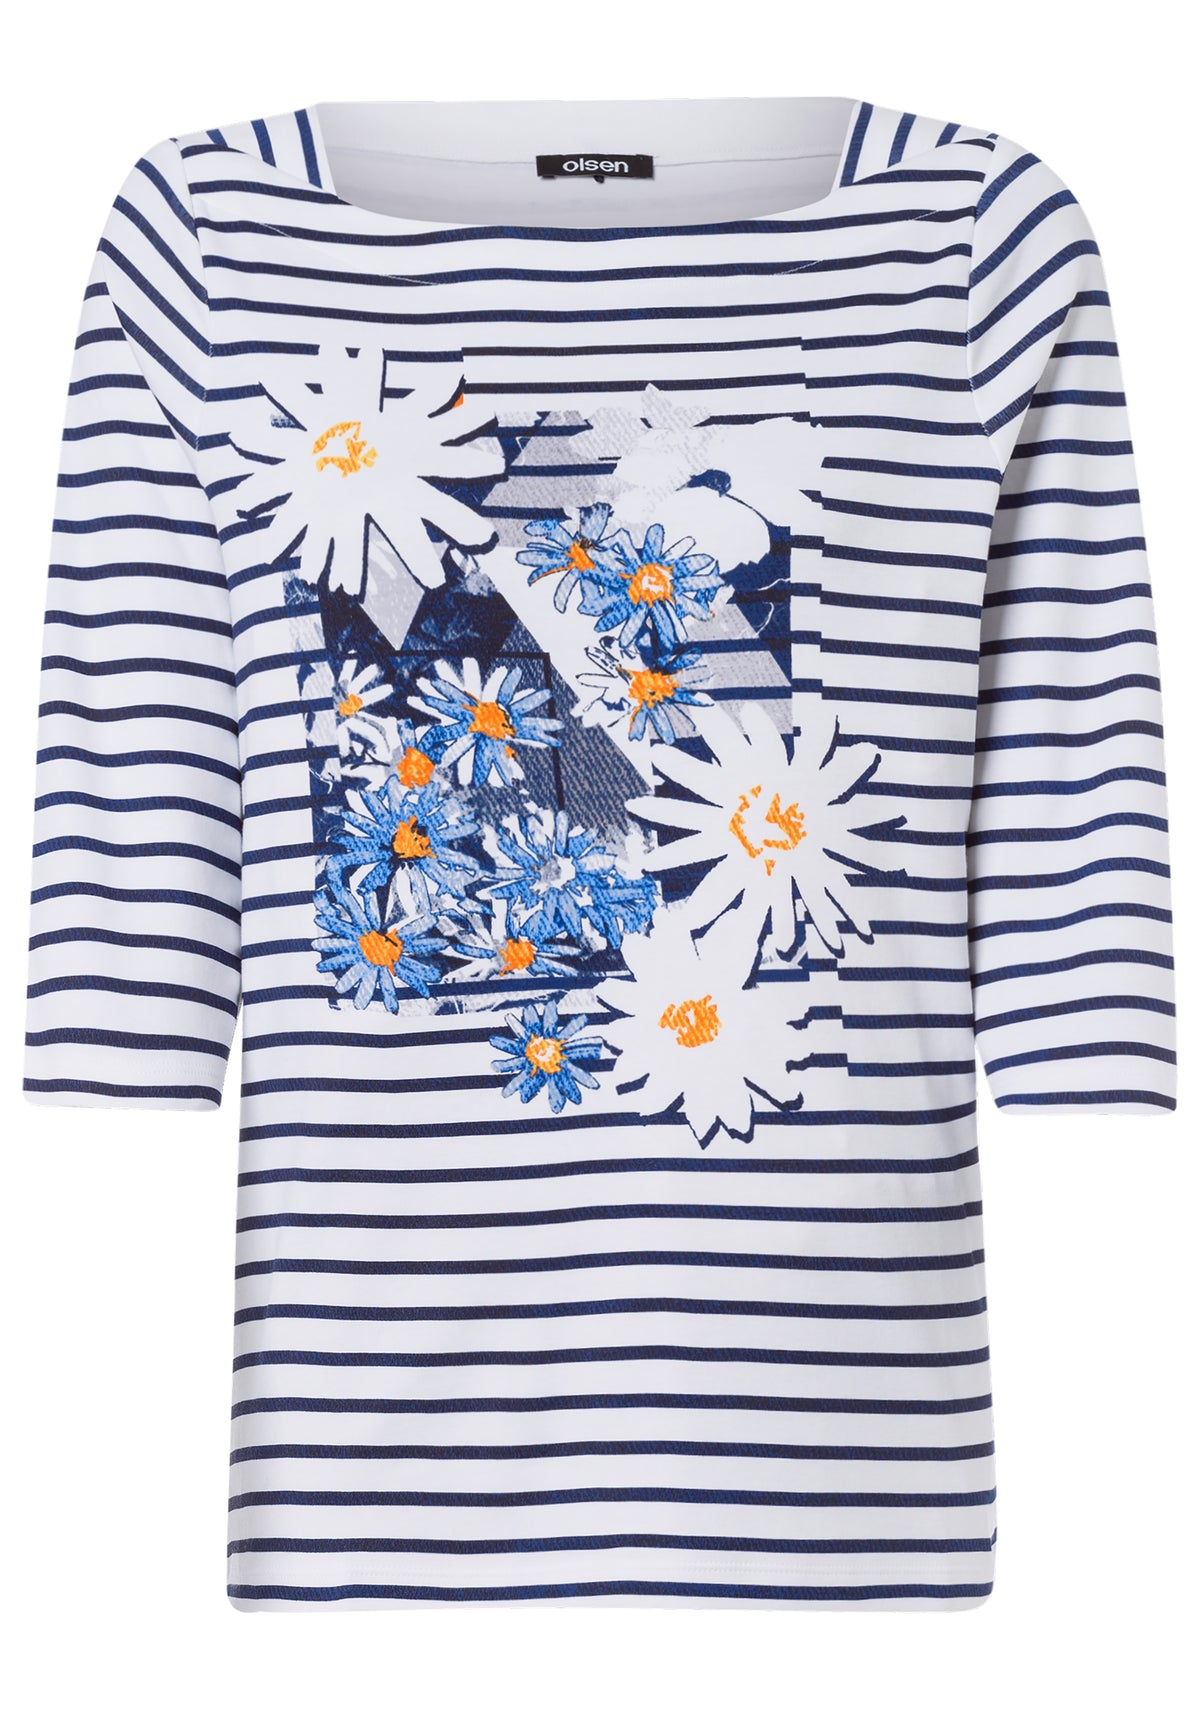 Stripe Boat Neck T-Shirt with Placement Deco Print